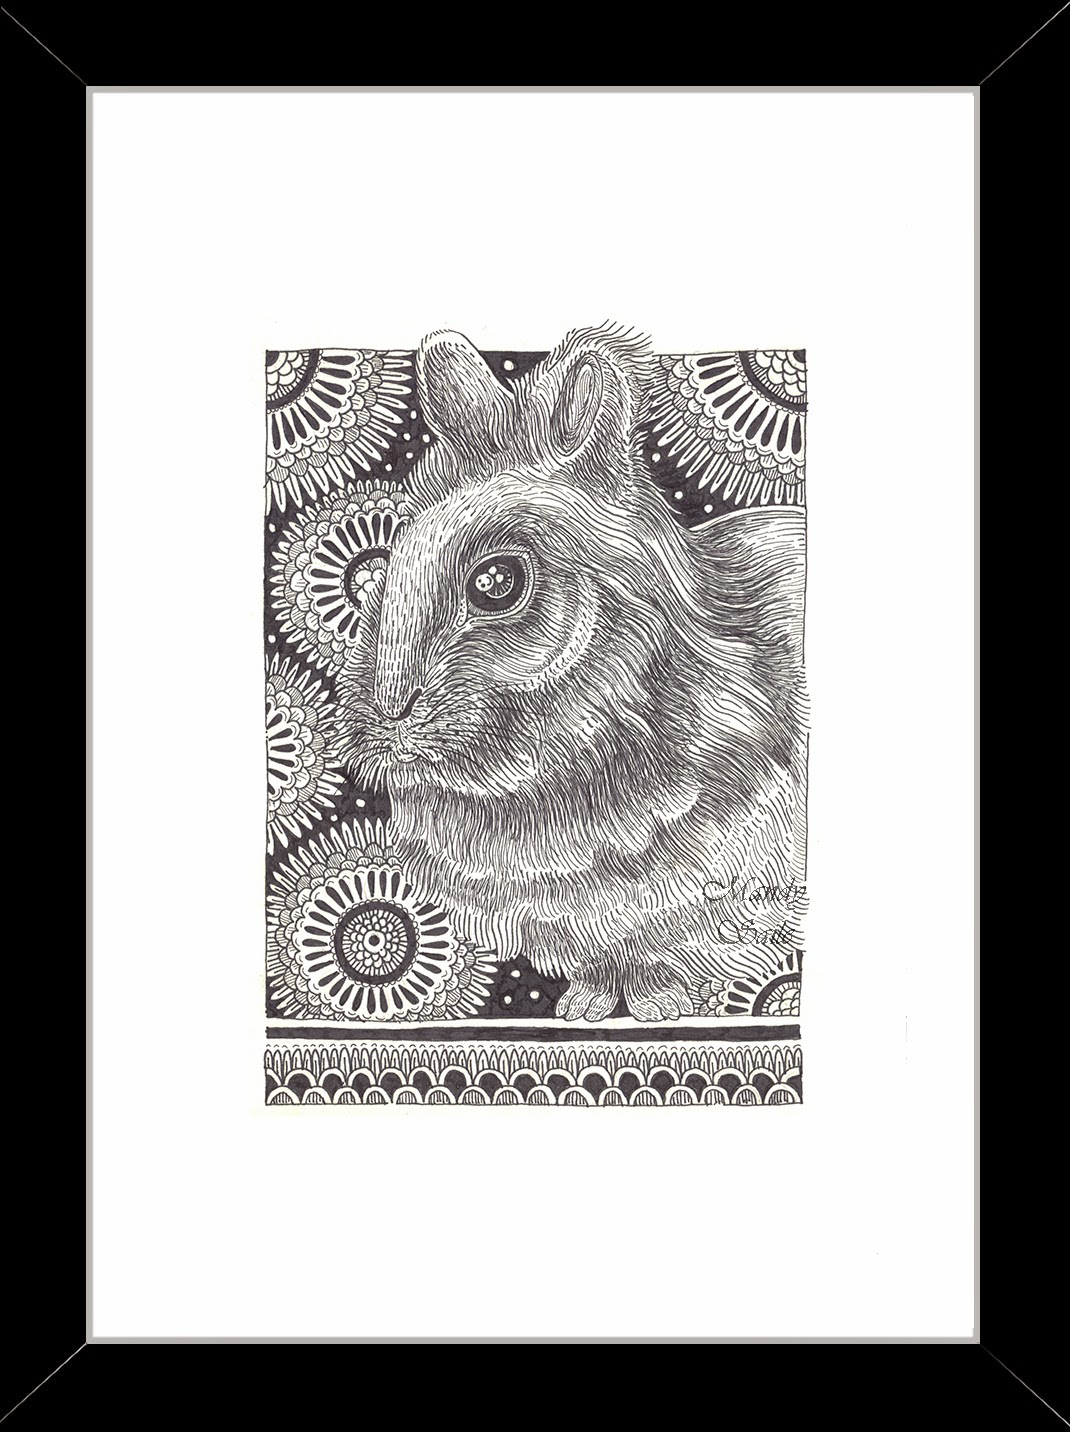 https://www.etsy.com/listing/209881818/rabbit-ink-drawing-11-8-x-10-print-black?ref=shop_home_active_21